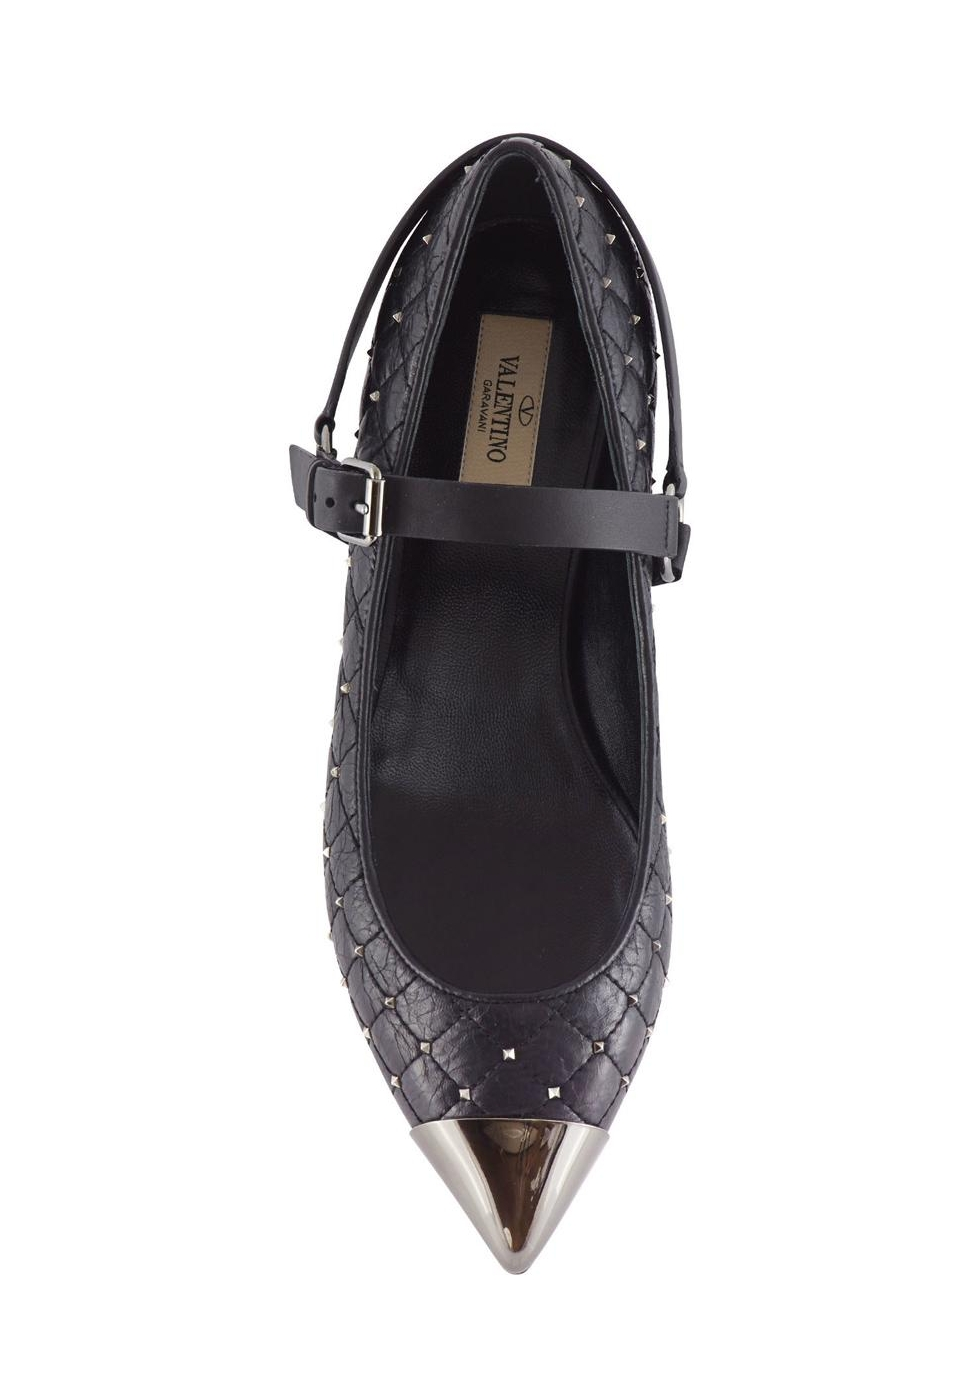 Valentino stripes ballerina in black leather with studs ...